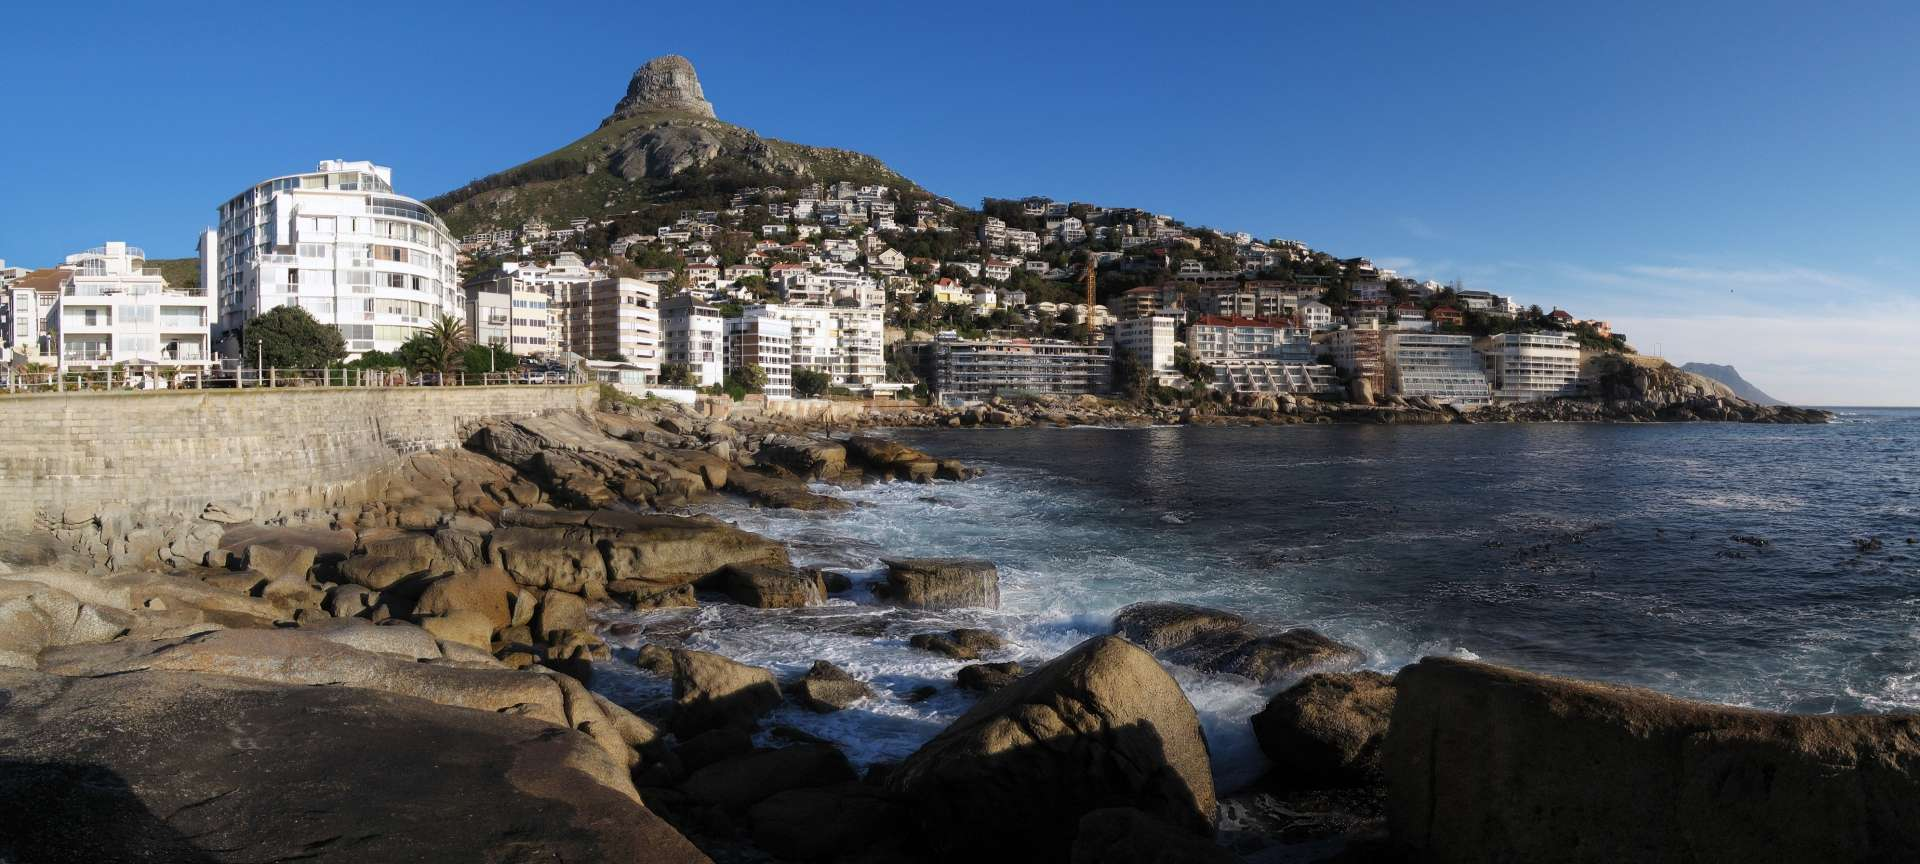 Bantry Bay is a luxurious coastal suburb along Cape Town's Atlantic Seaboard